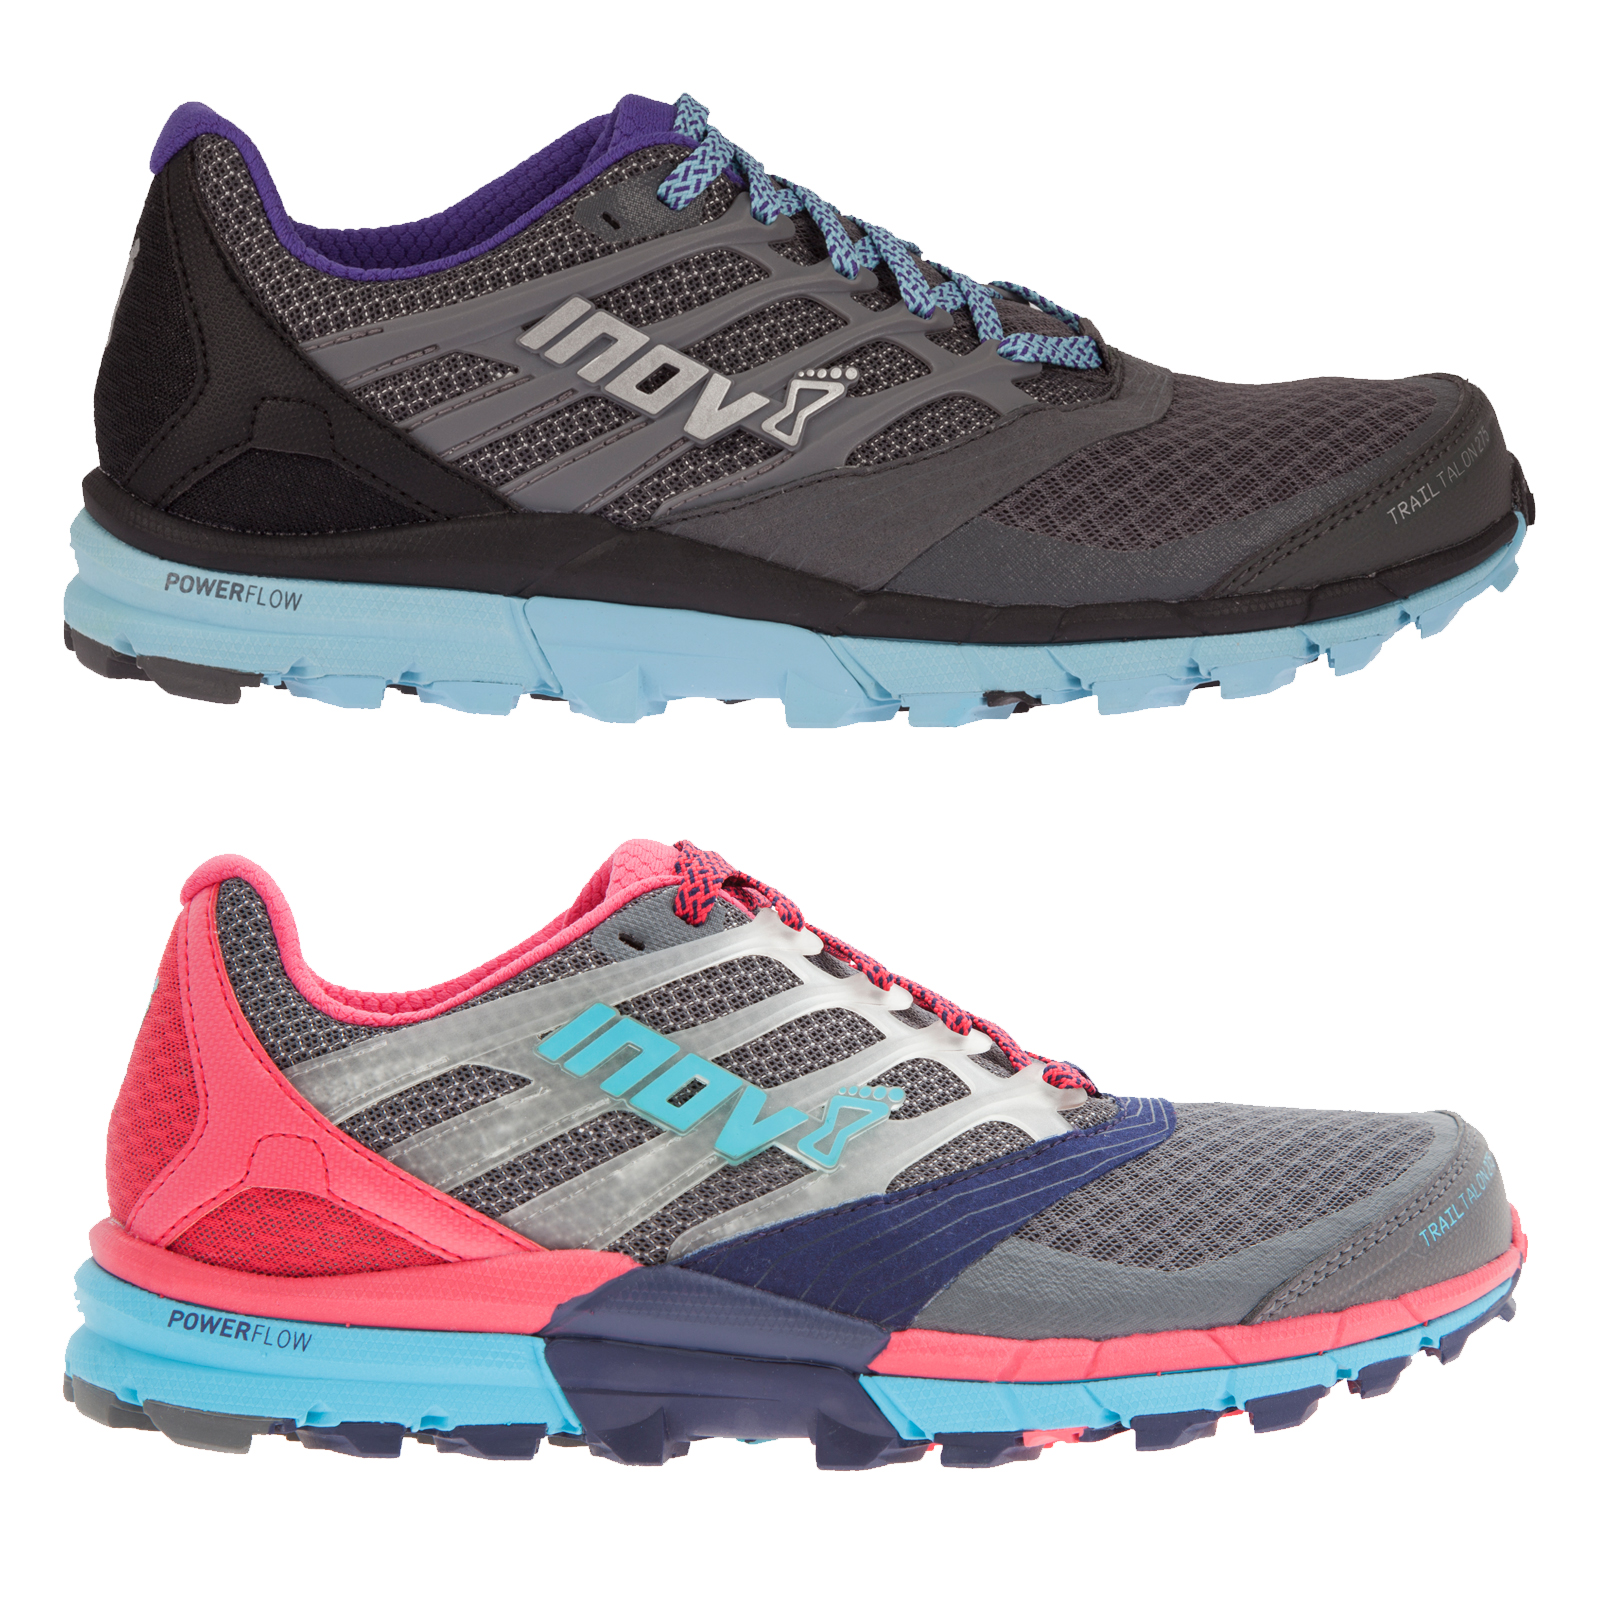 c65a4cacd5e8a Details about Inov-8 Trailtalon 275 Womens Outdoor Path & Trail Running  Workout Sneakers Shoes